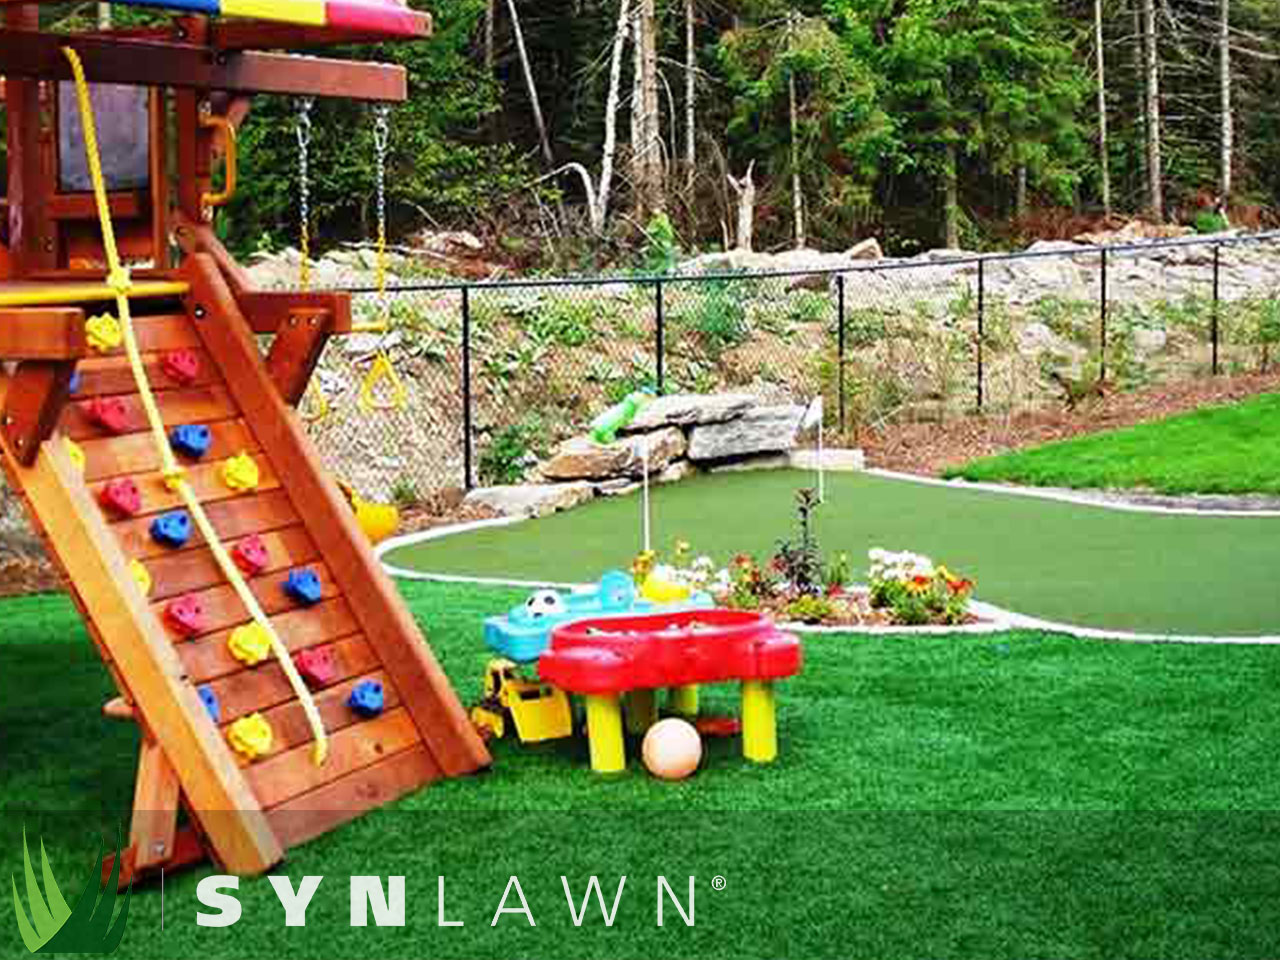 SYNLawn Playground Photo 40